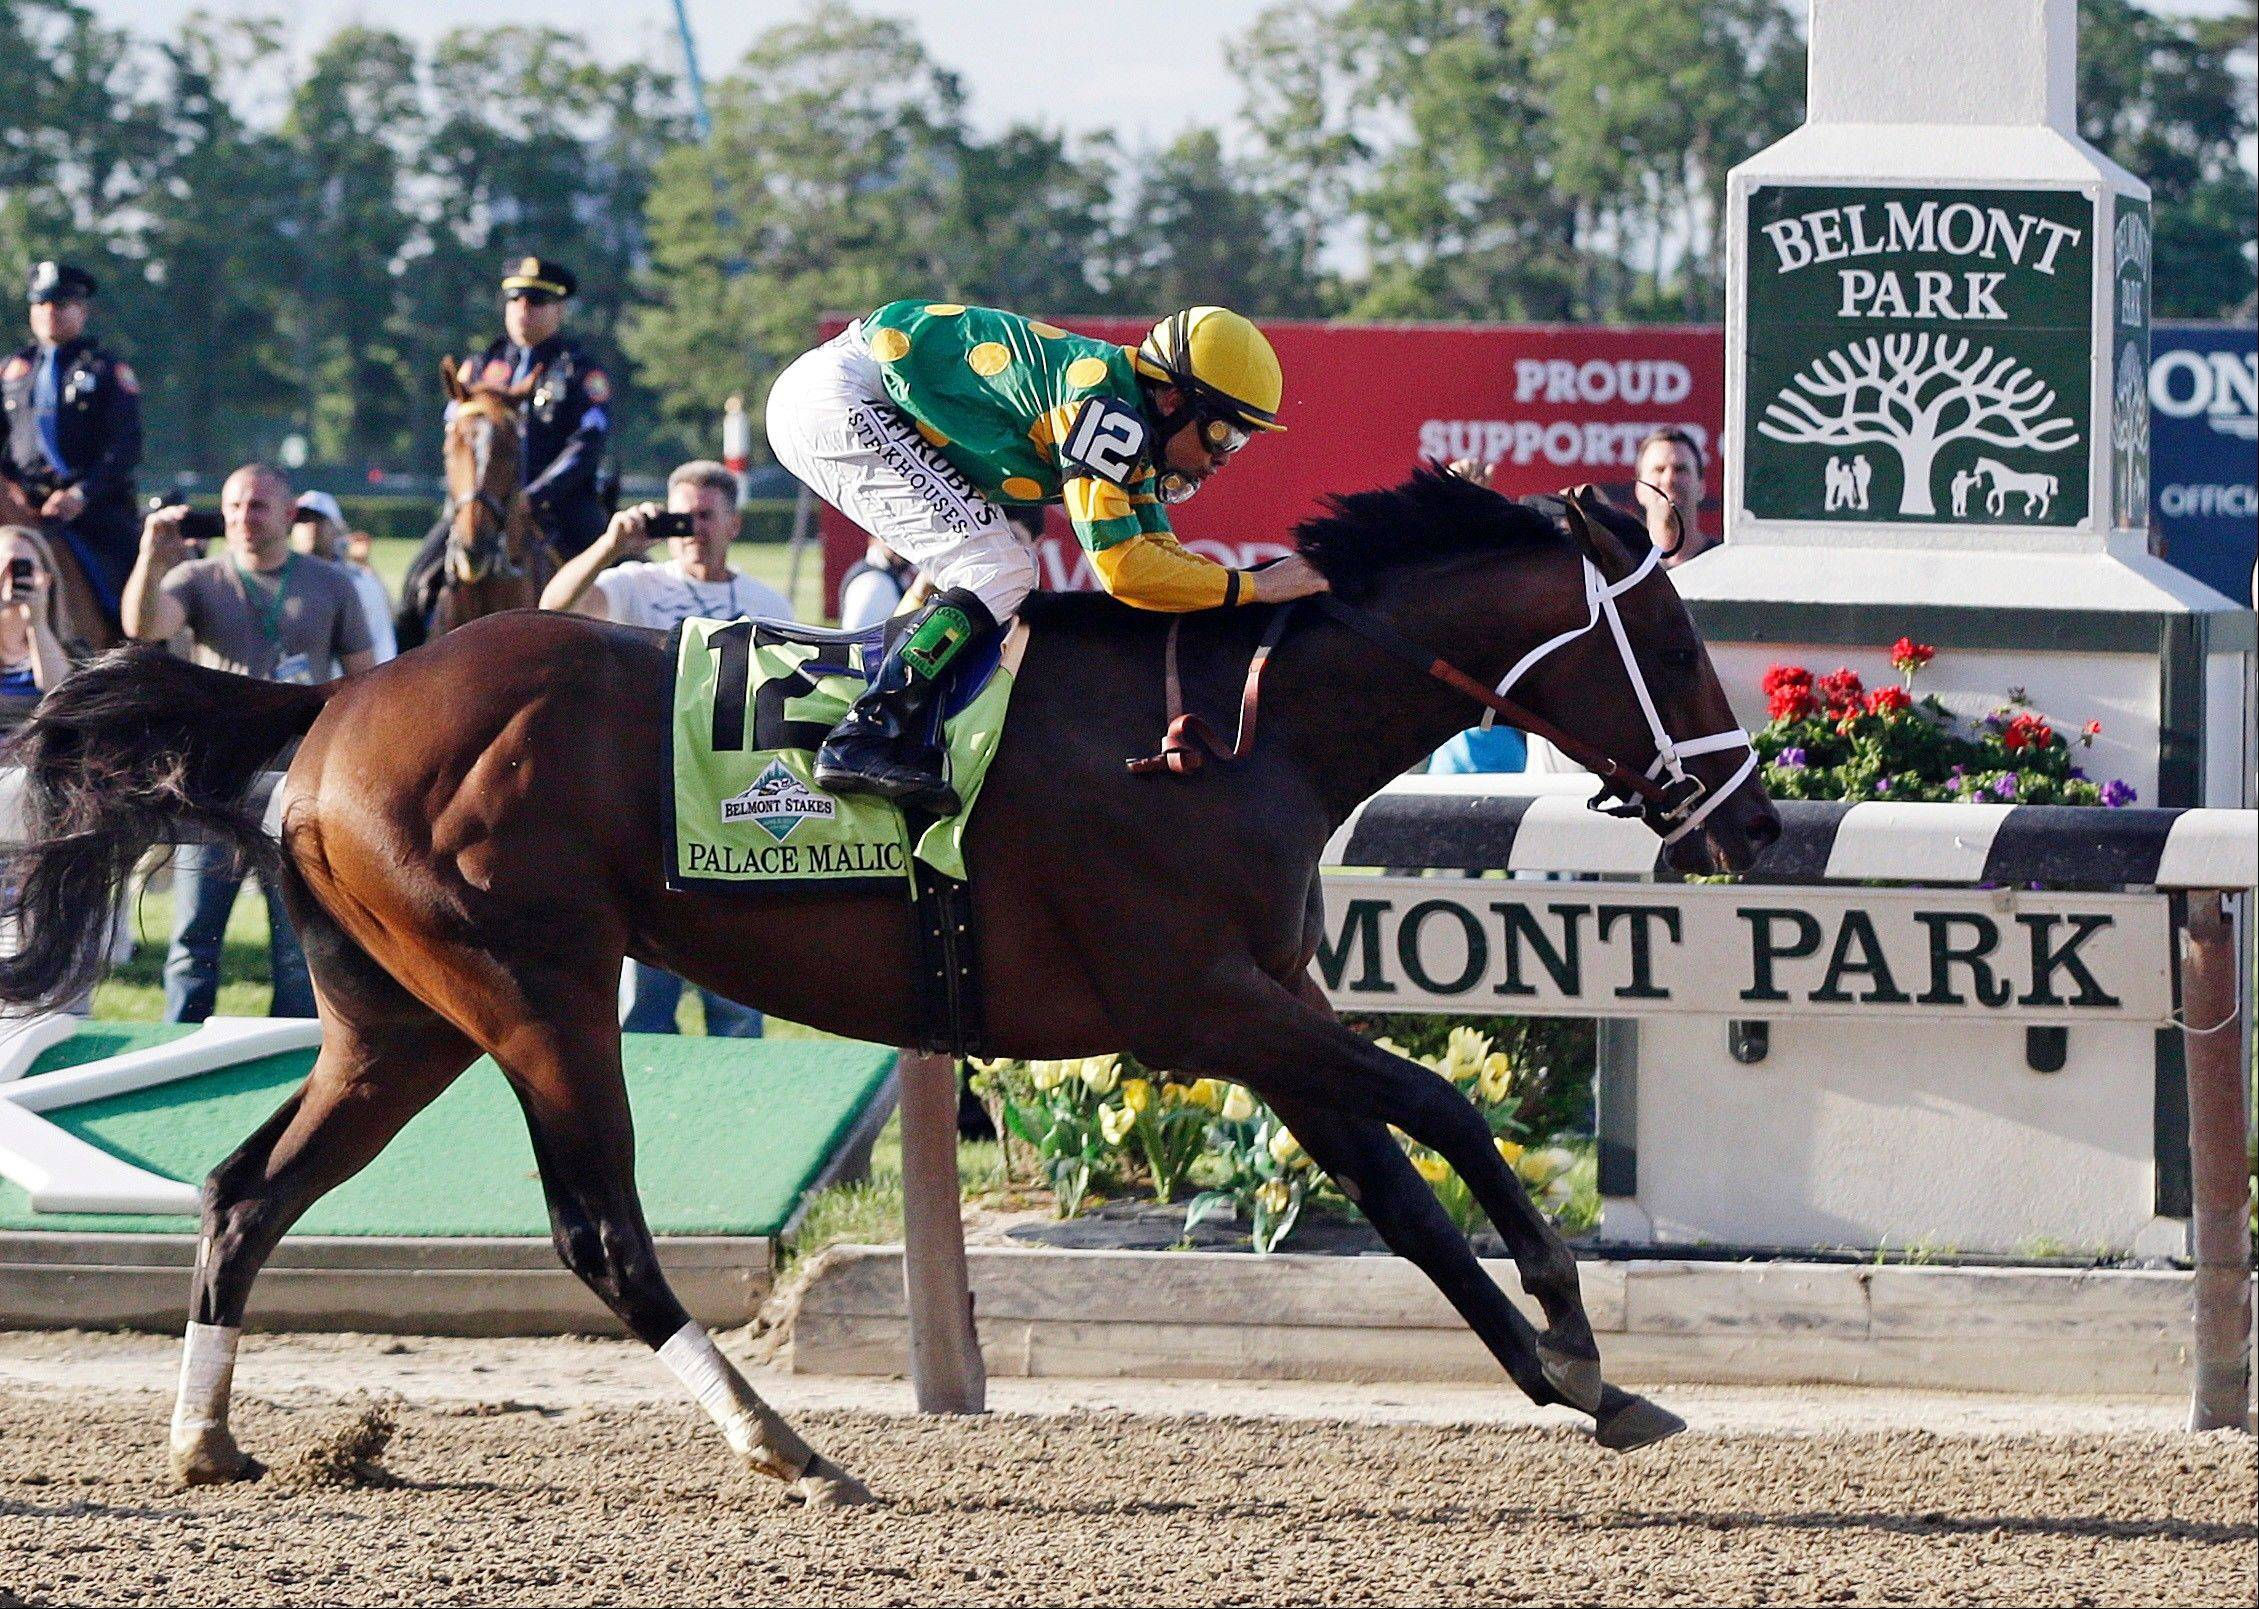 Palace Malice, ridden by jockey Mike Smith, crosses the finish line to win the the 145th Belmont Stakes horse race at Belmont Park Saturday, June 8, 2013, in Elmont, N.Y.